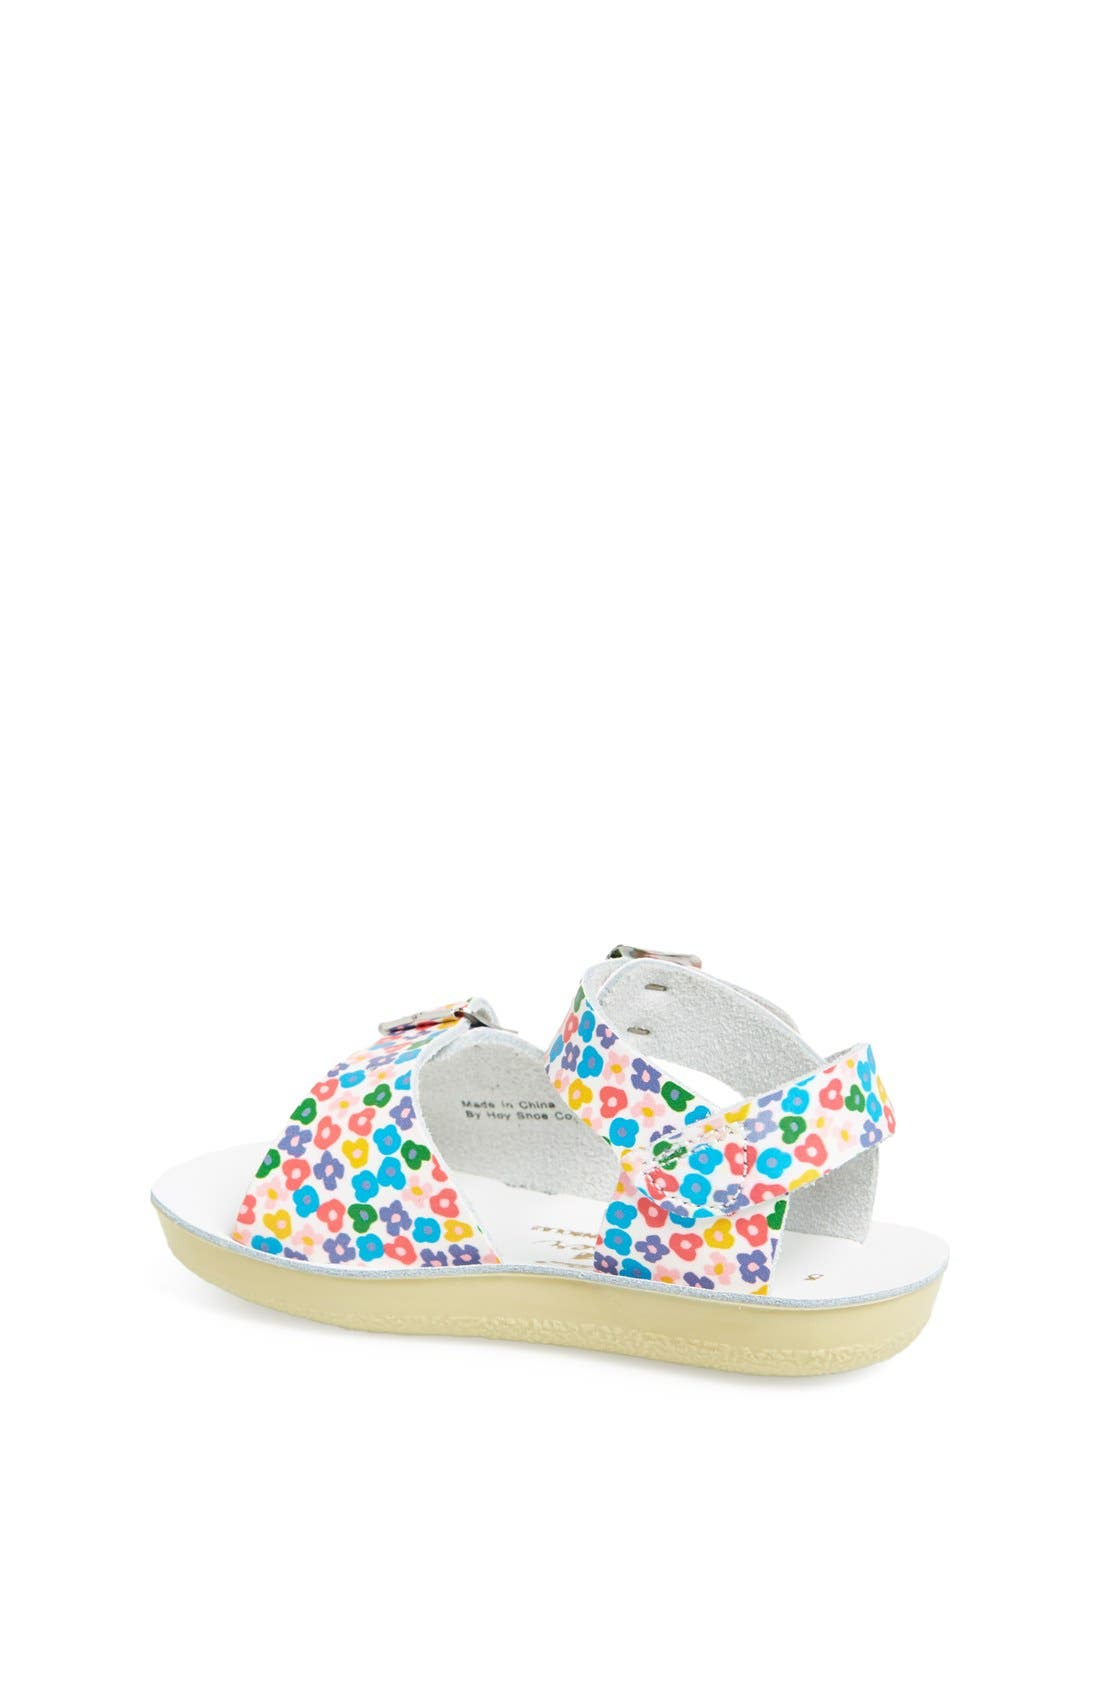 Alternate Image 2  - Salt Water Sandals by Hoy 'Surfer' Sandal (Baby & Walker)